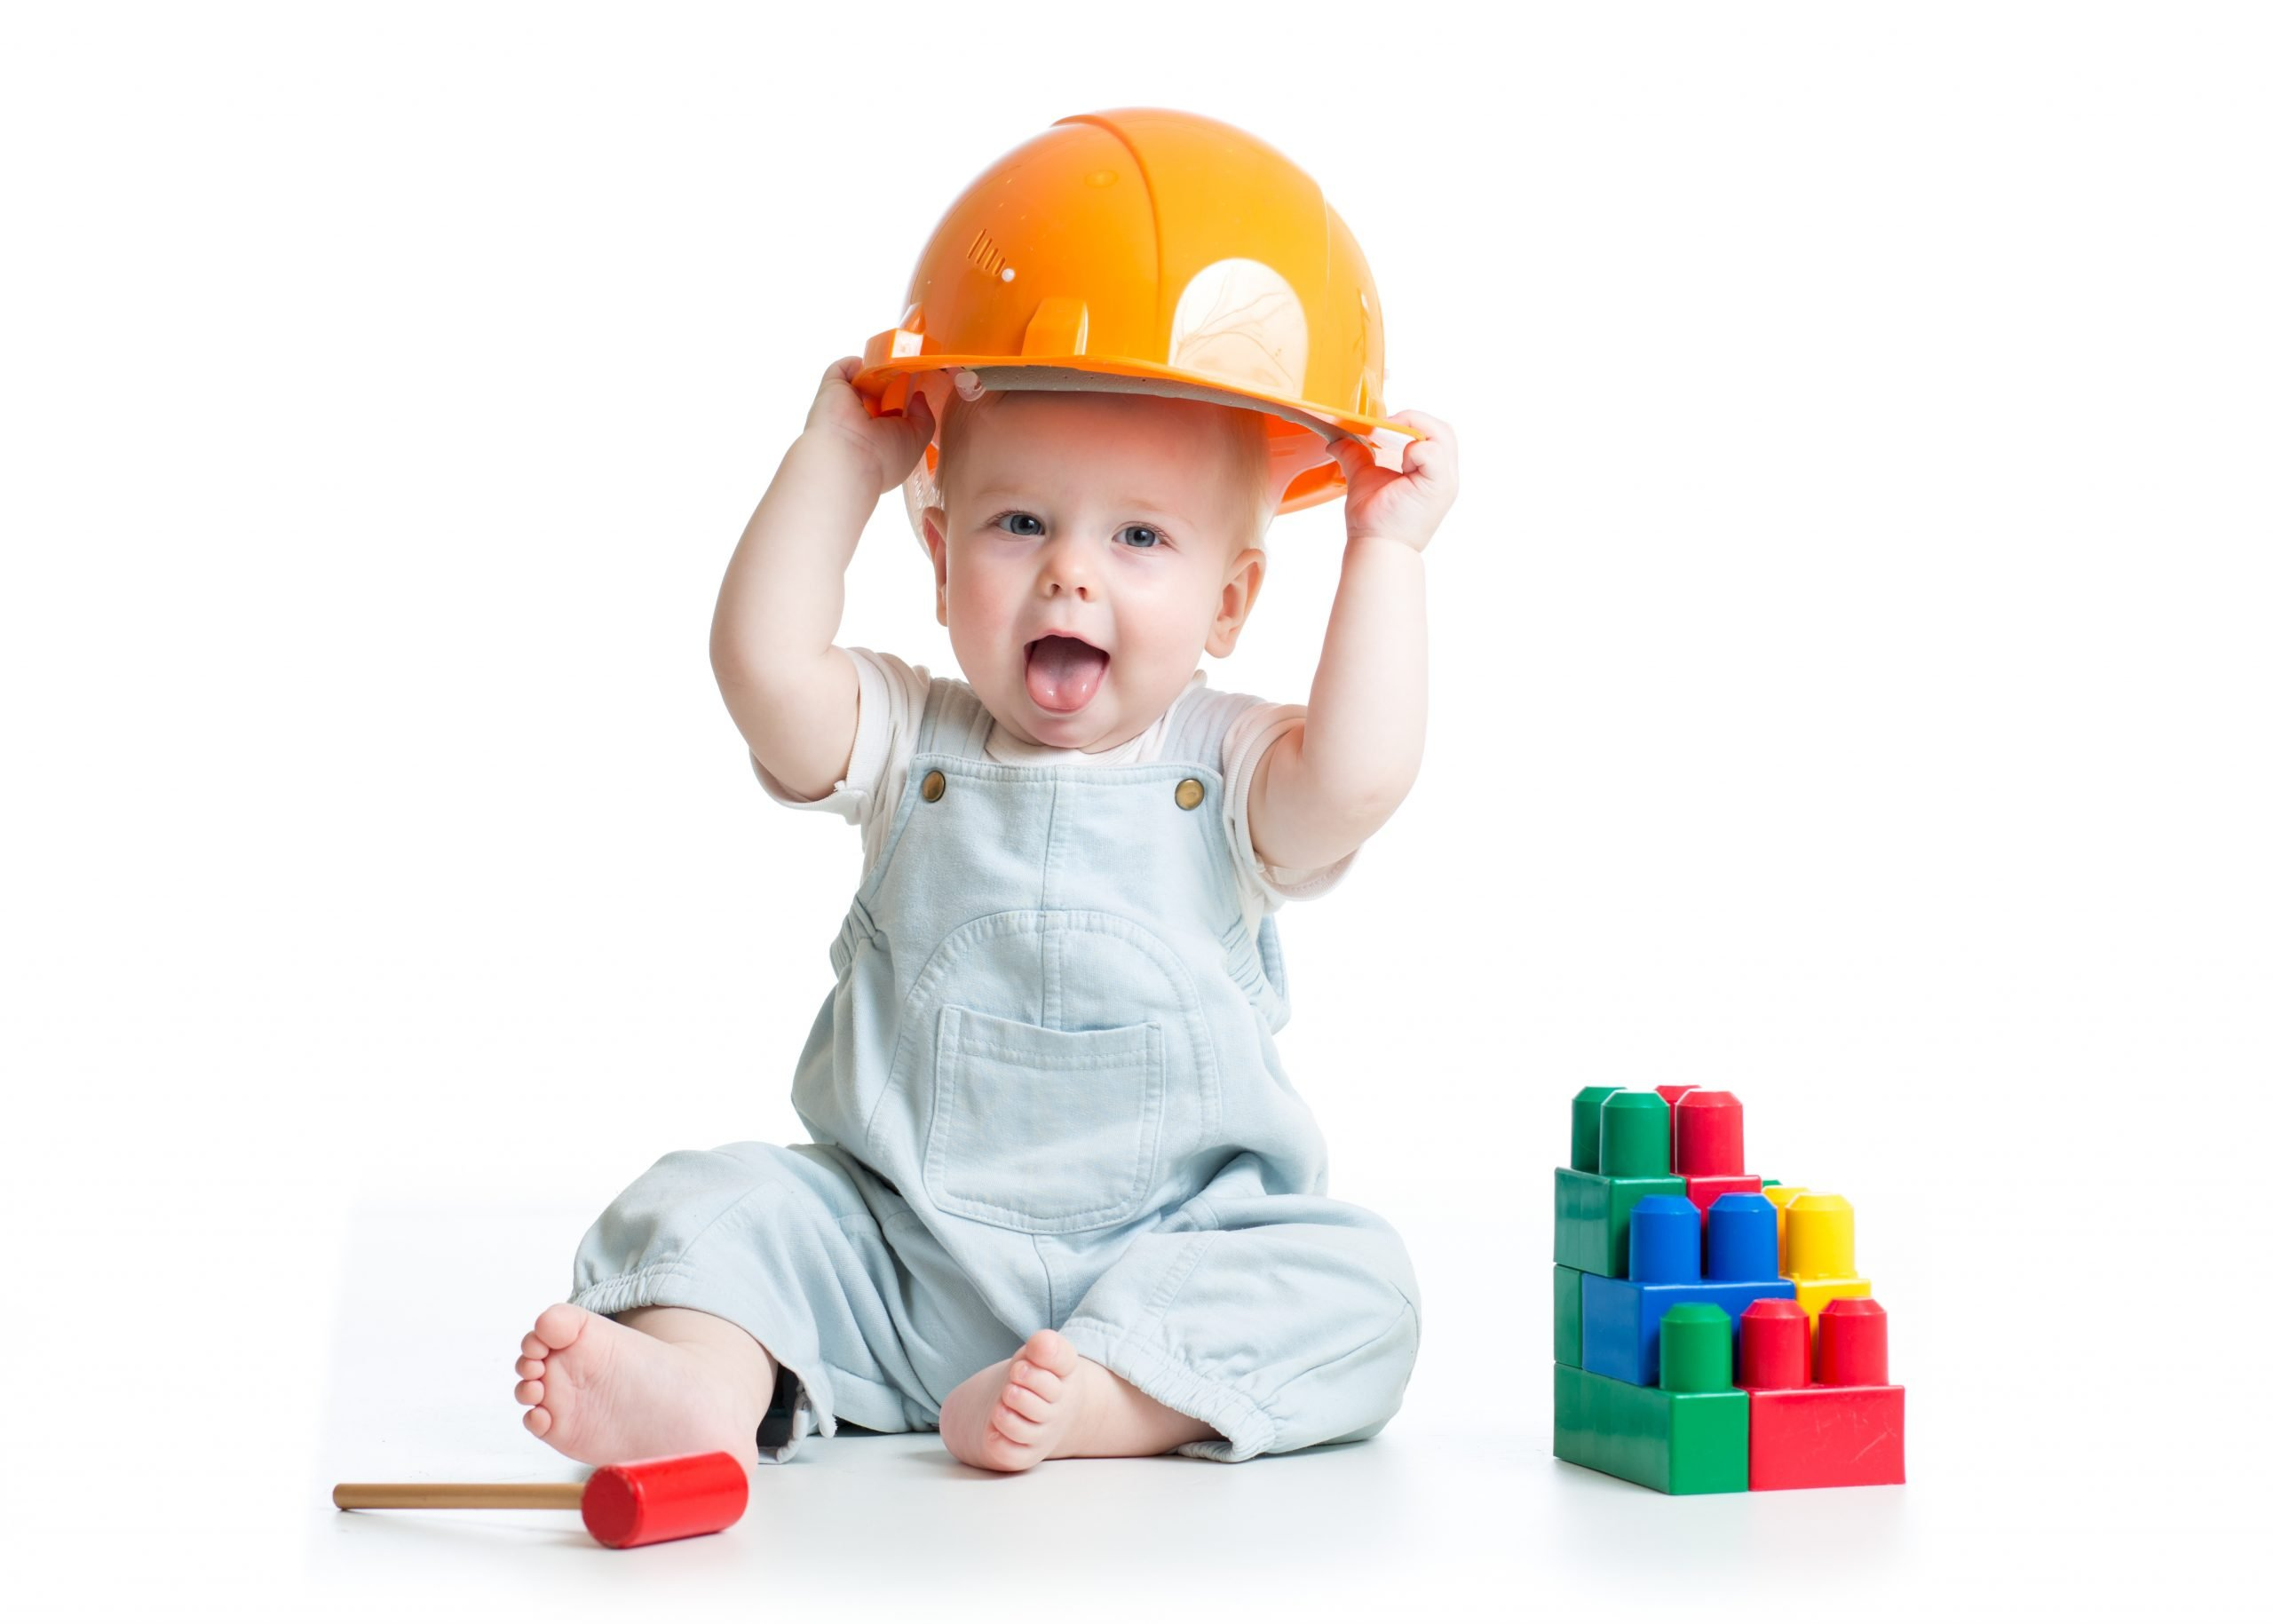 Childcare Safety